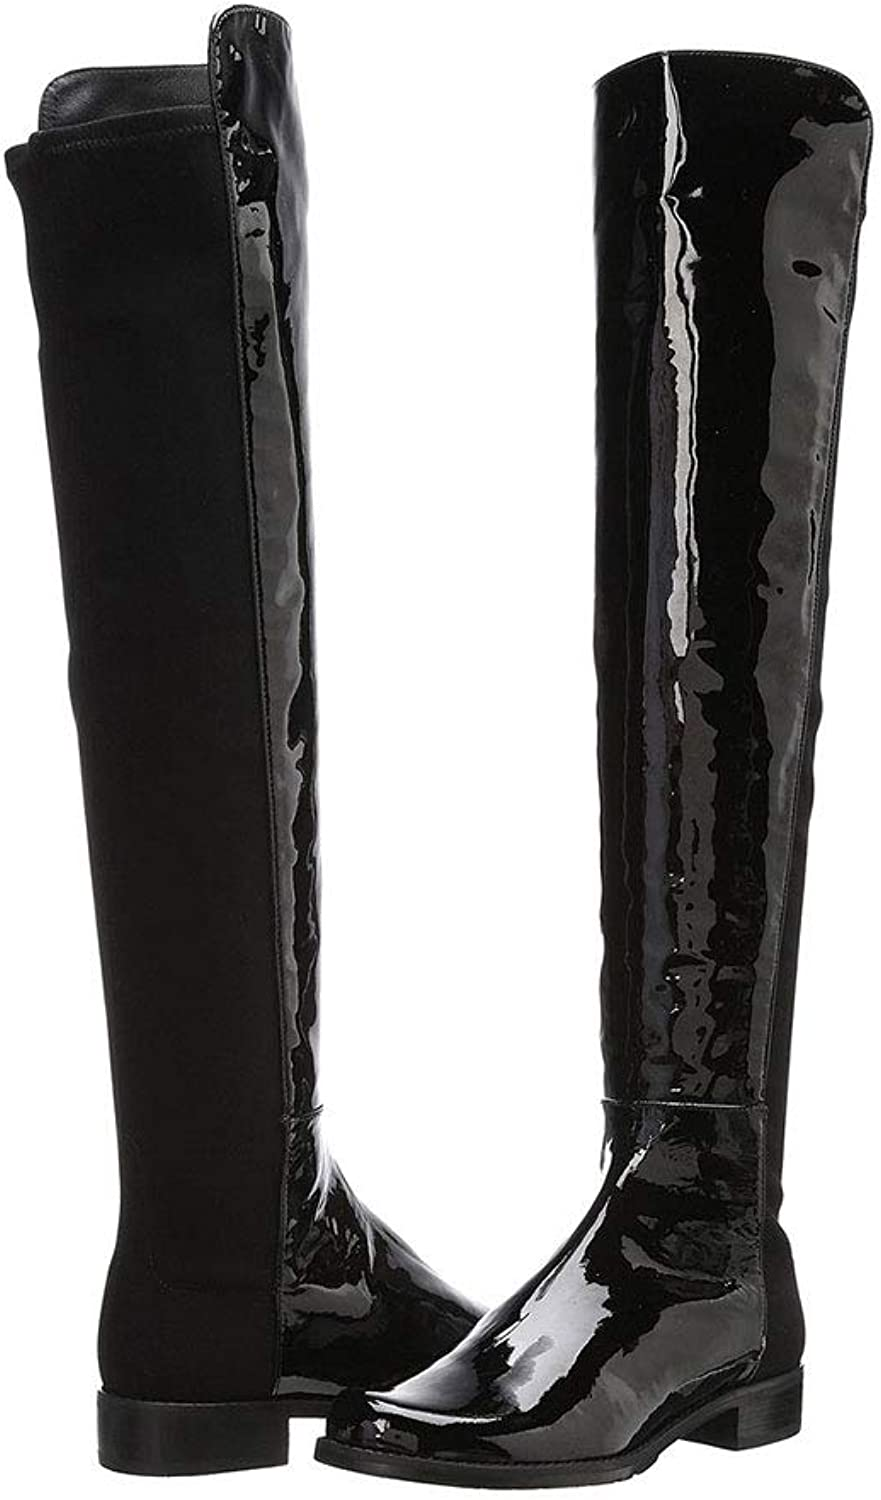 Women's Flat Knee Boots Low Heel Patent Leather Knight Boots High Boots Spell Leather Round Head Warm Boots